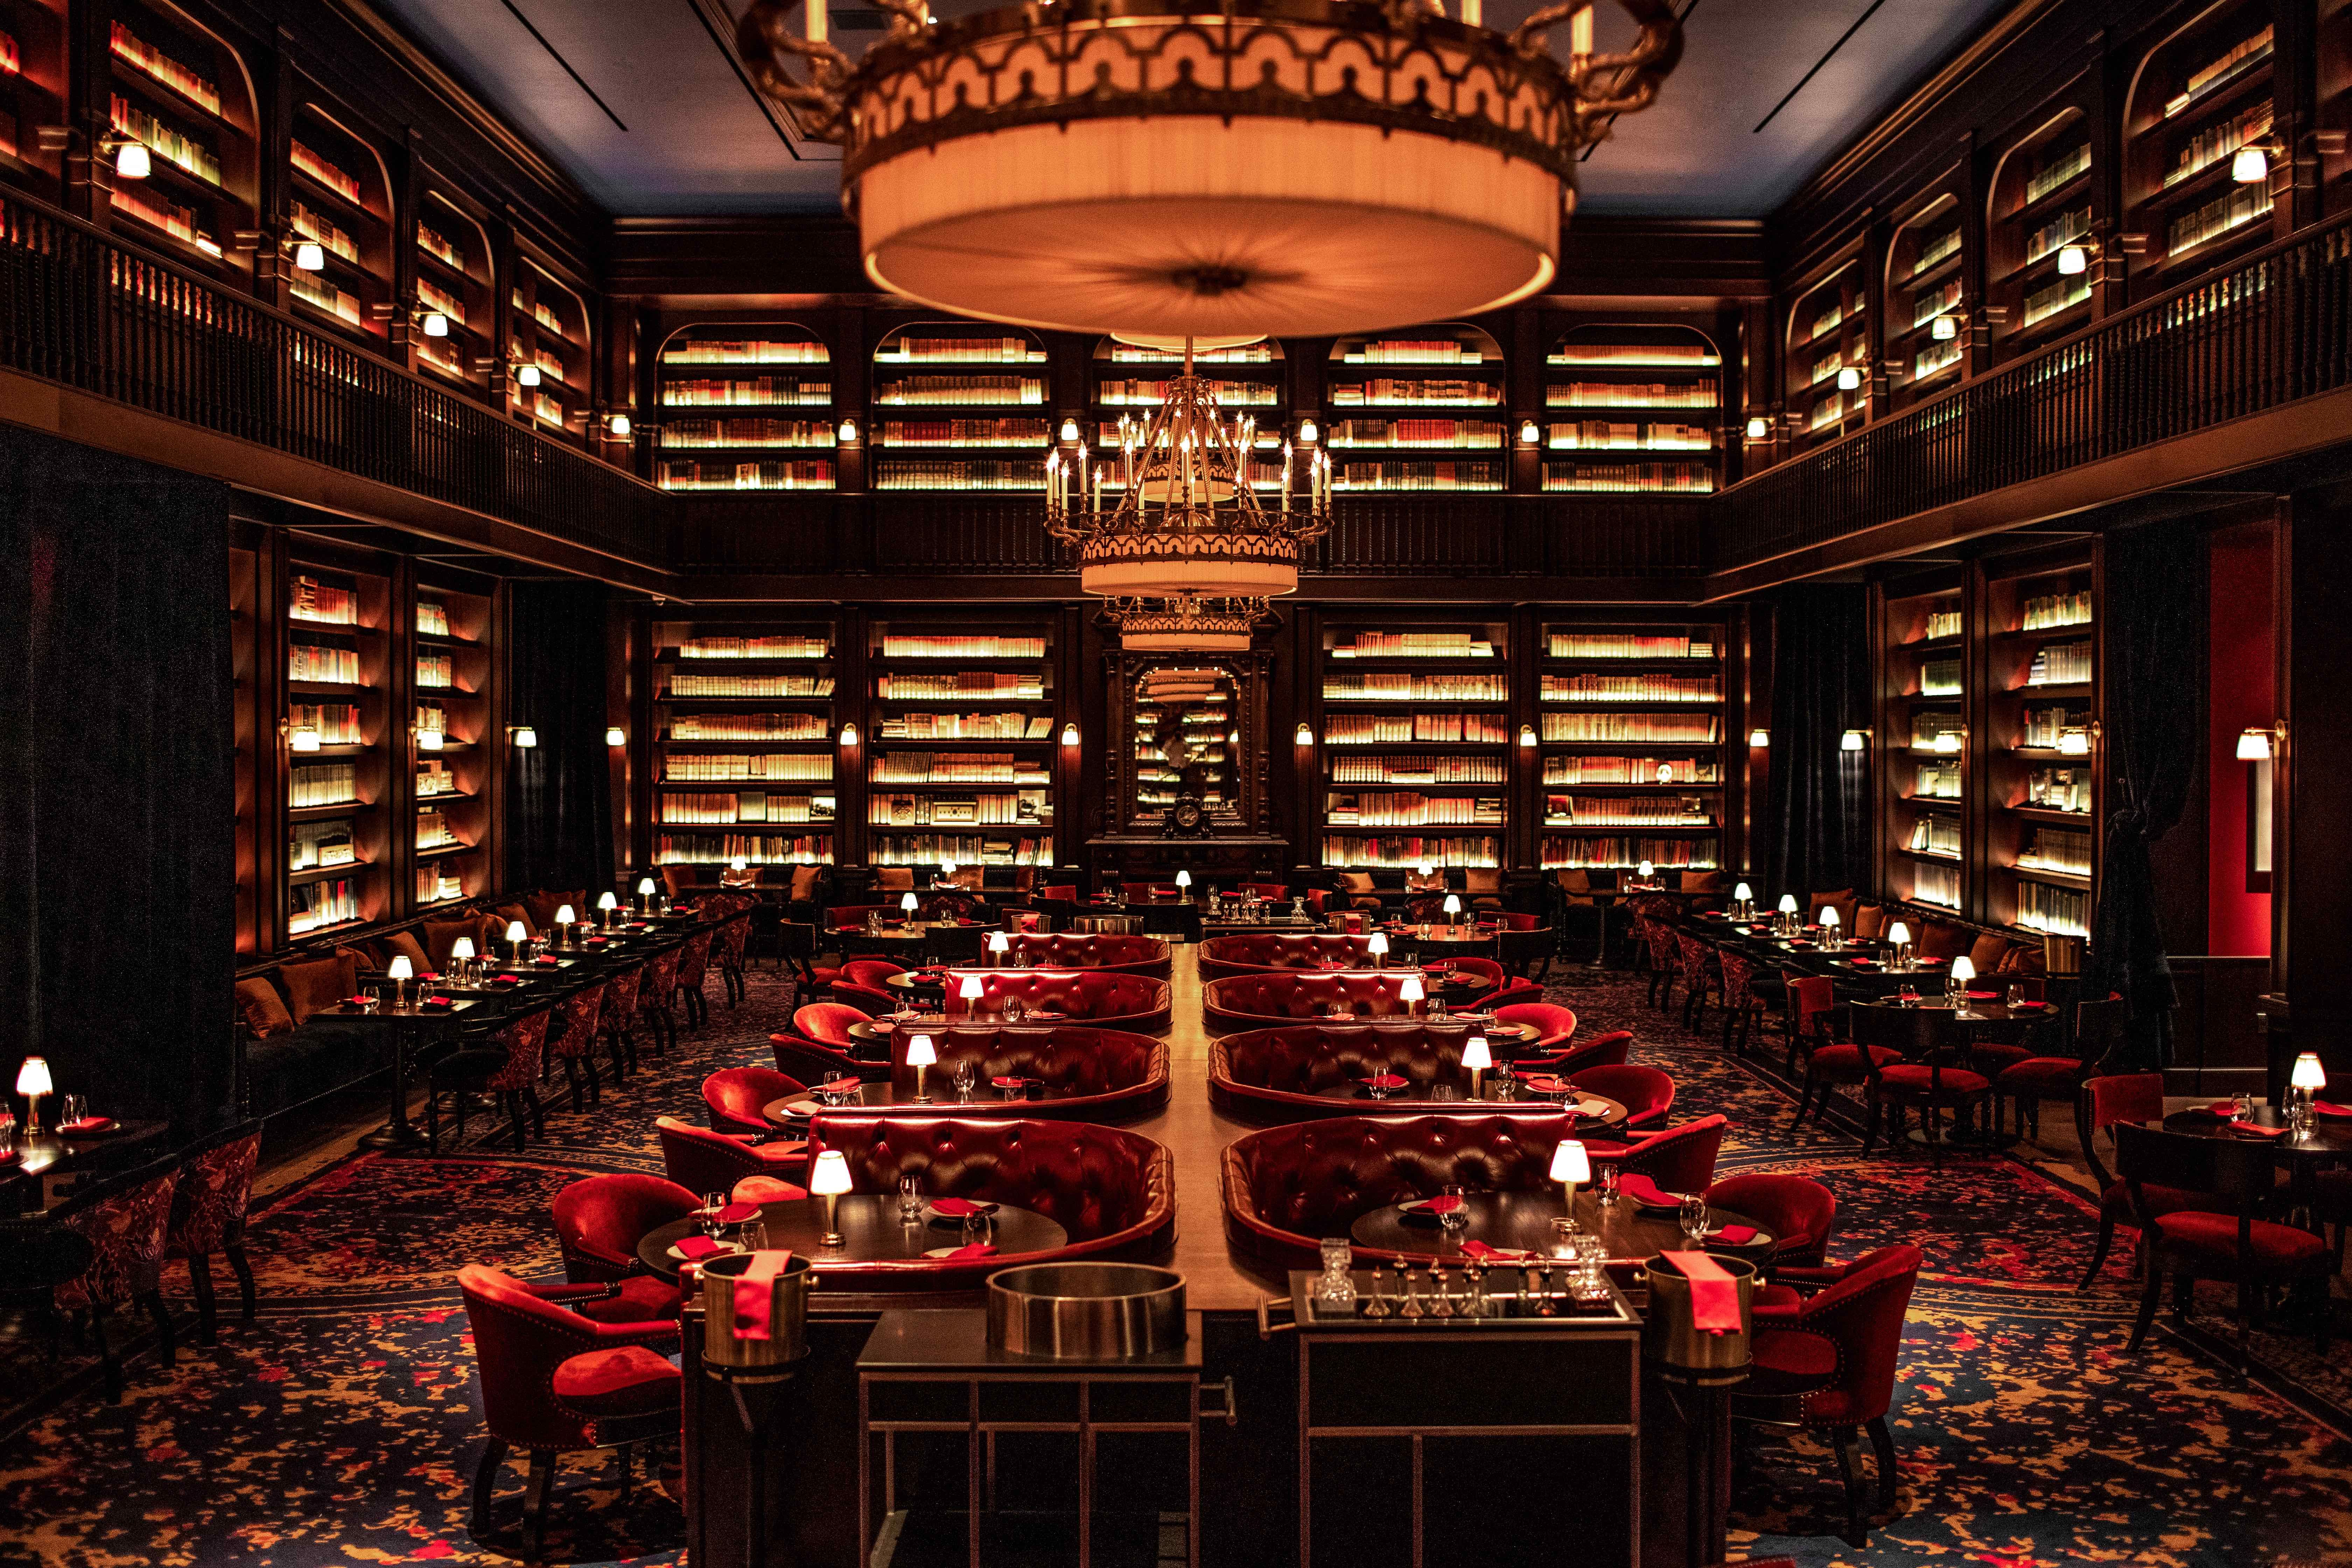 Nomad Restaurant David Rockefeller S Book Collection On Display At Nomad Las Vegas